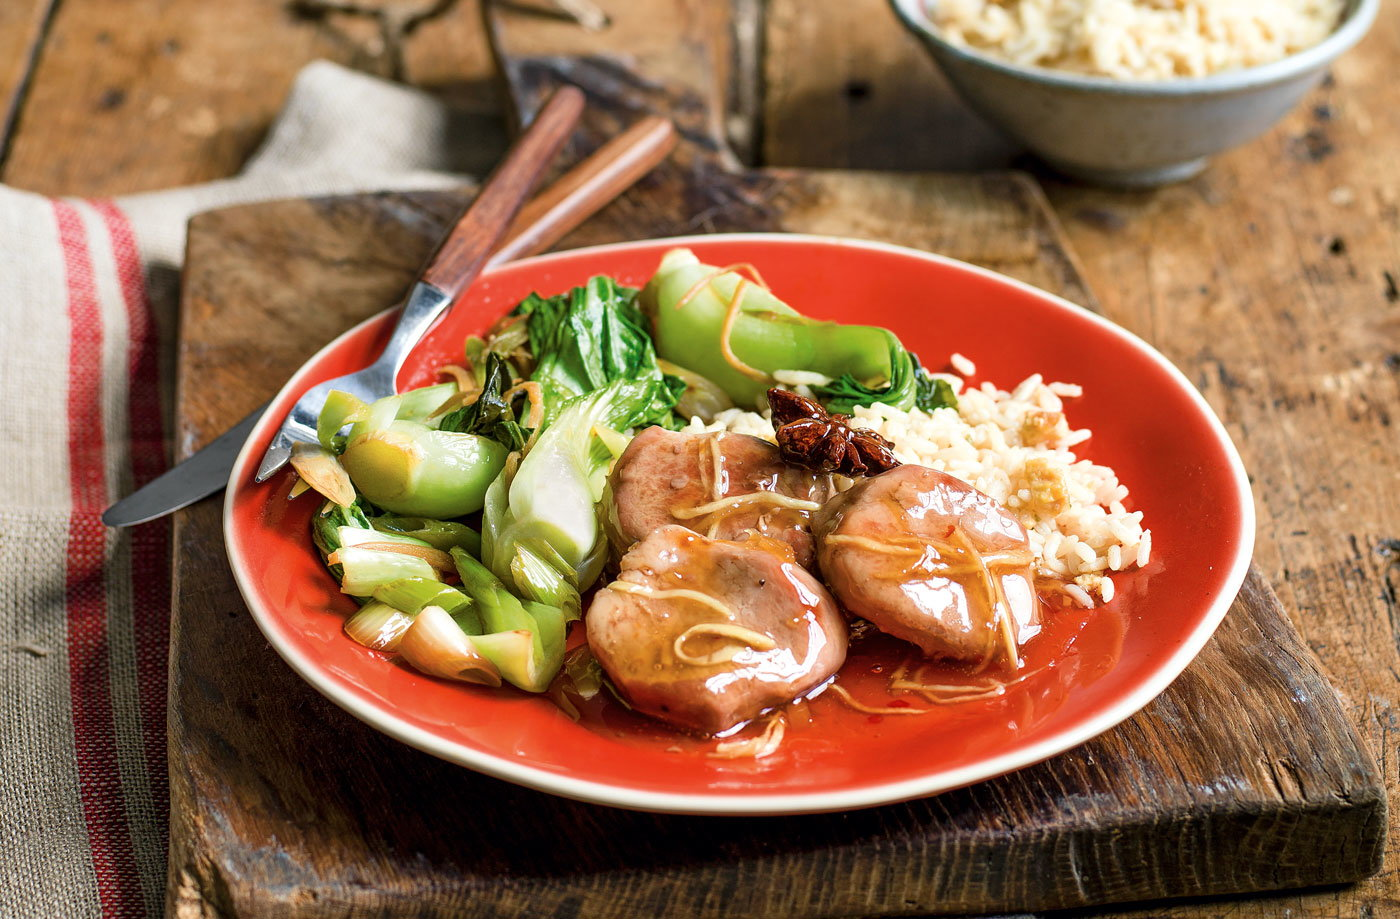 Sticky plum pork with stir-fried veg and rice